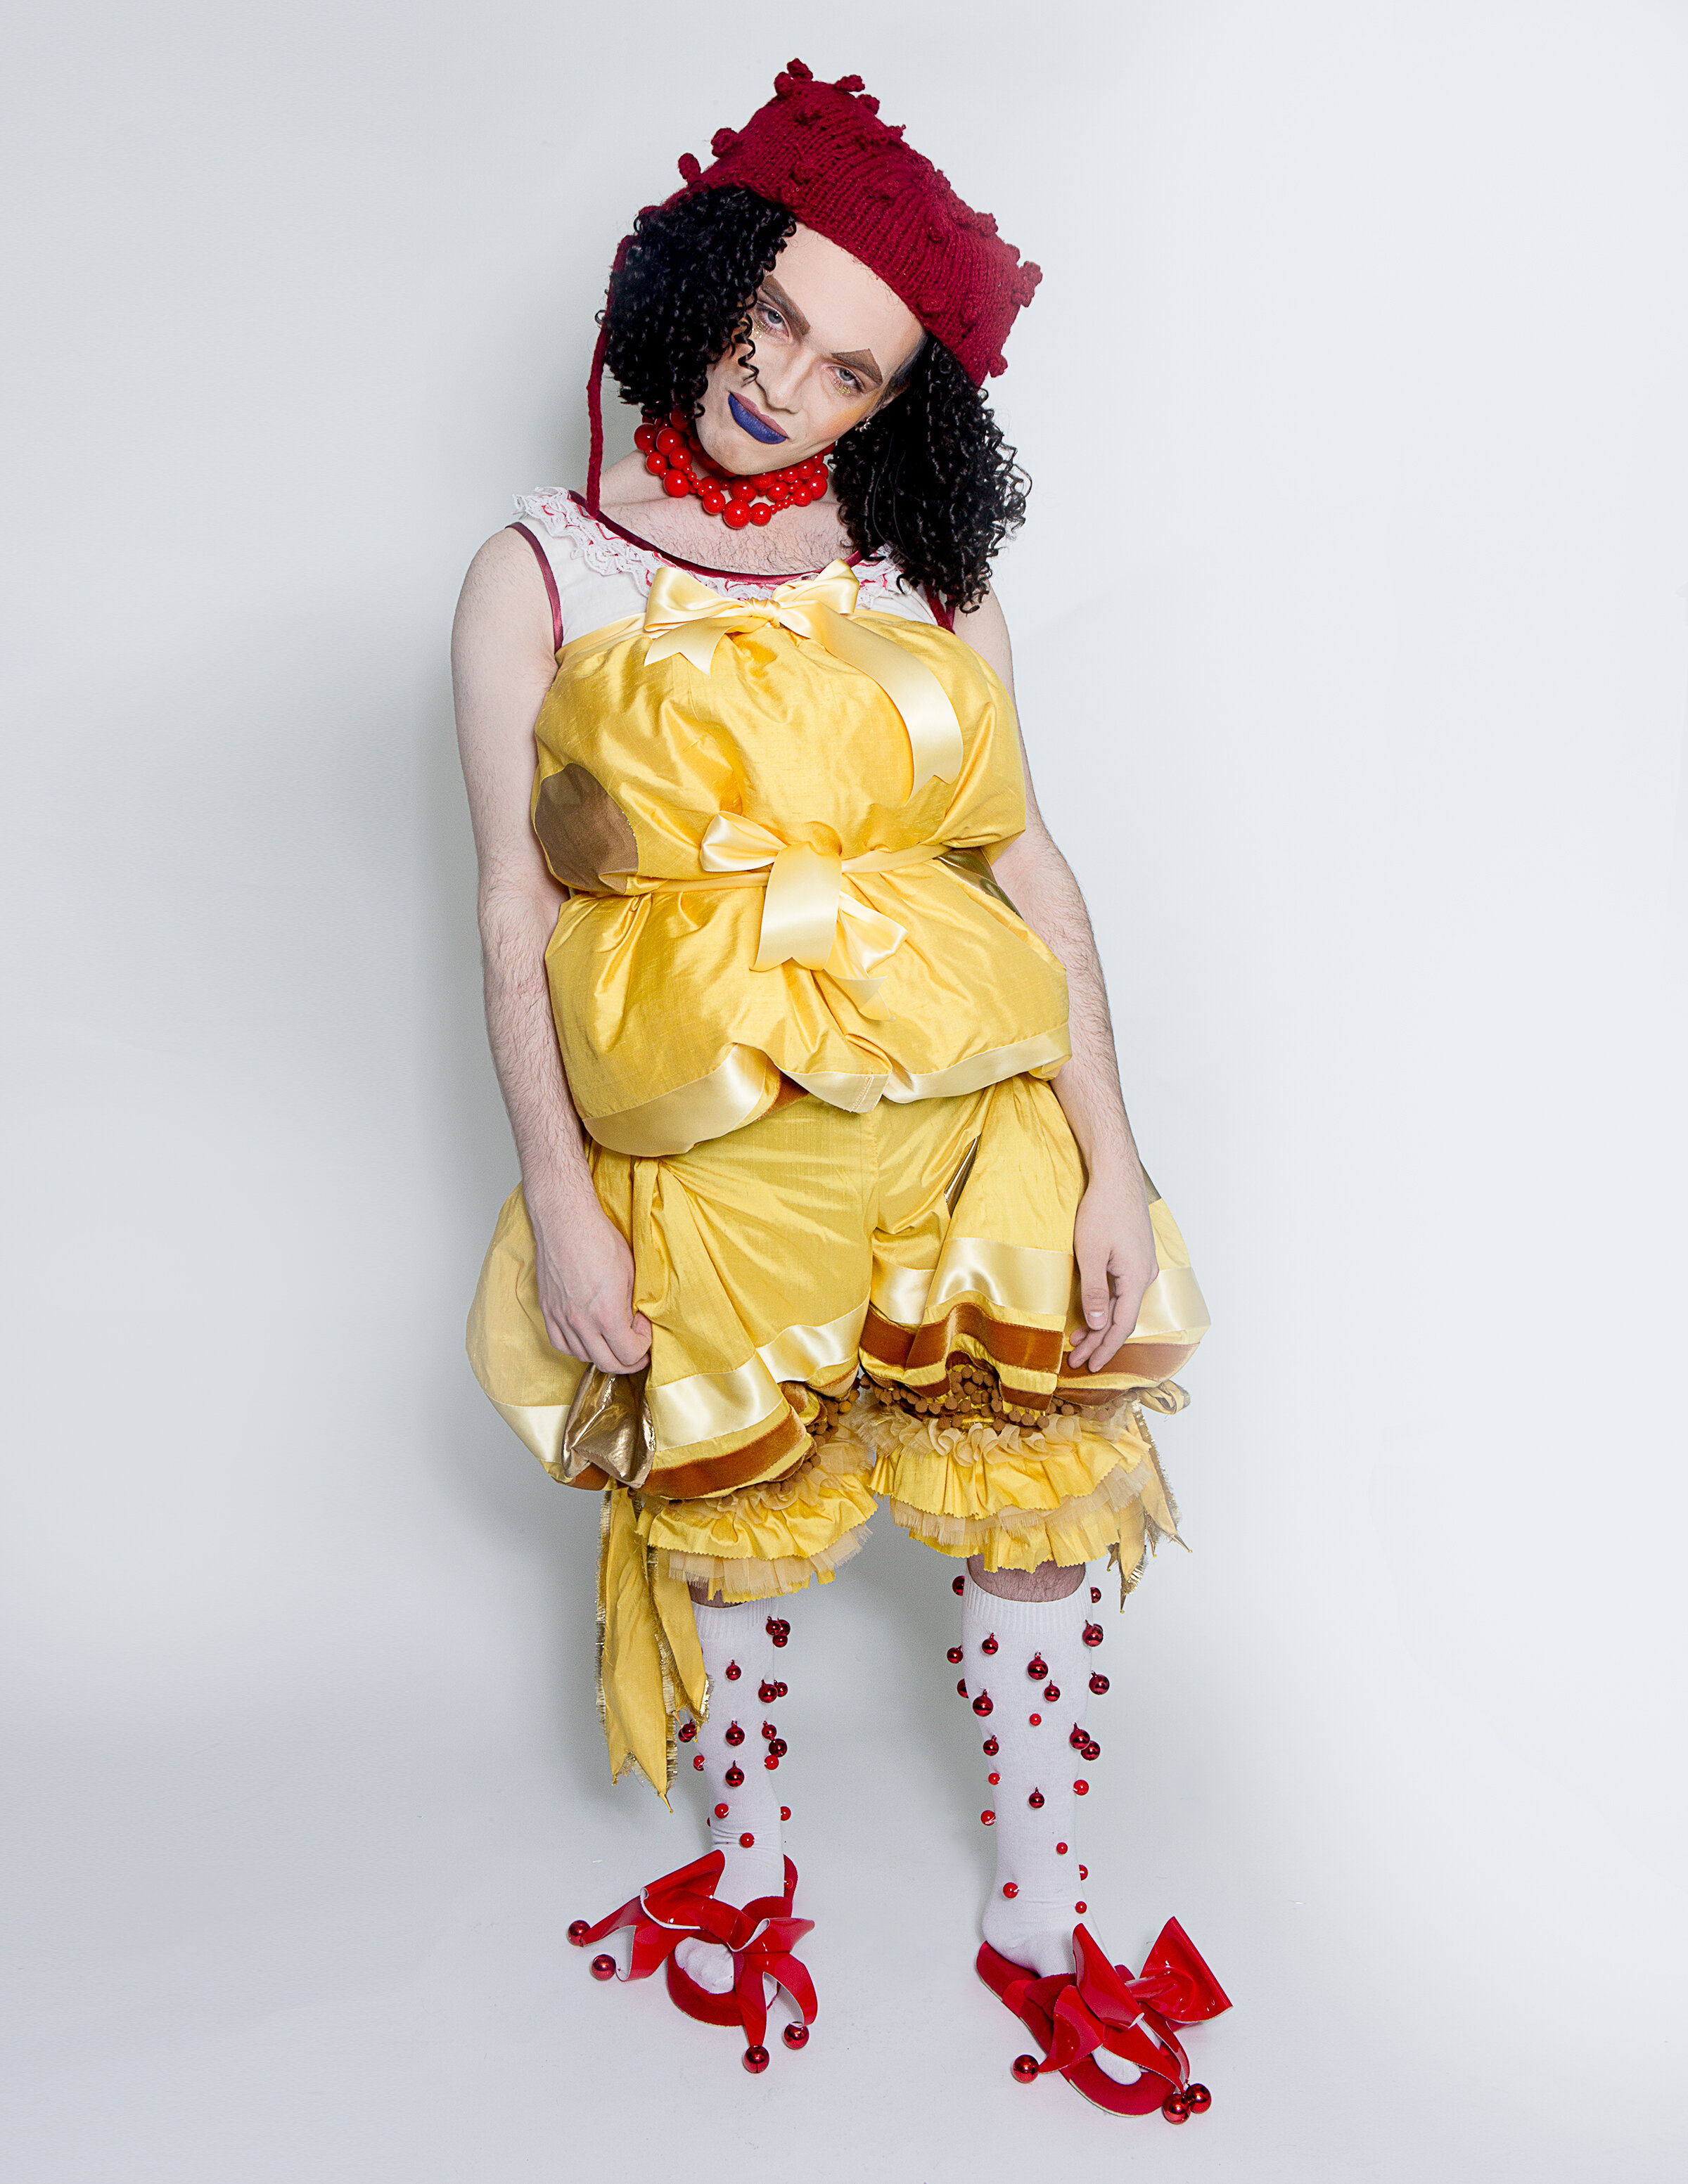 LOOK 3 - THE JESTER